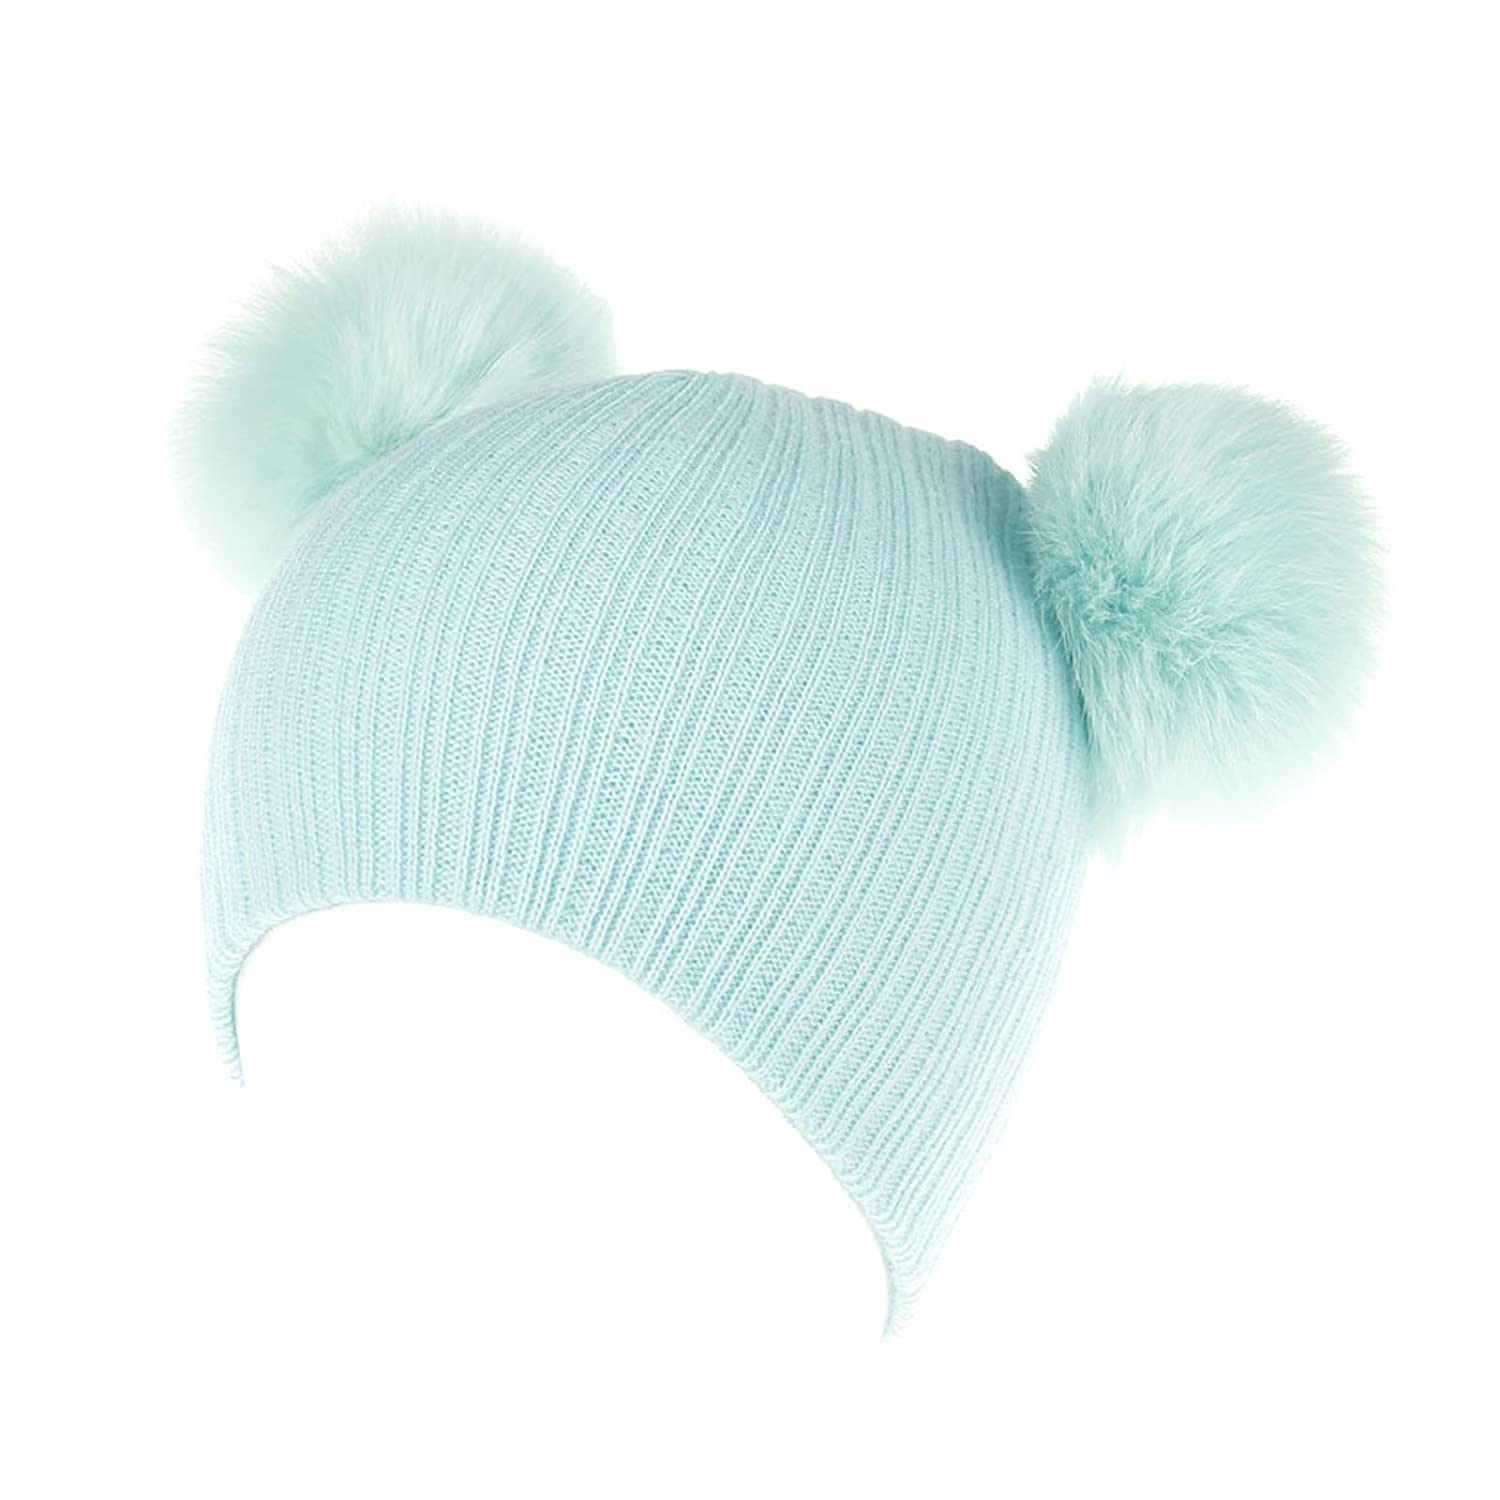 Unisex Solid Color Warm Cap - Boys Girls Toddler Autumn Winter Ball Pompom Bobble Hats 0611BDXW114